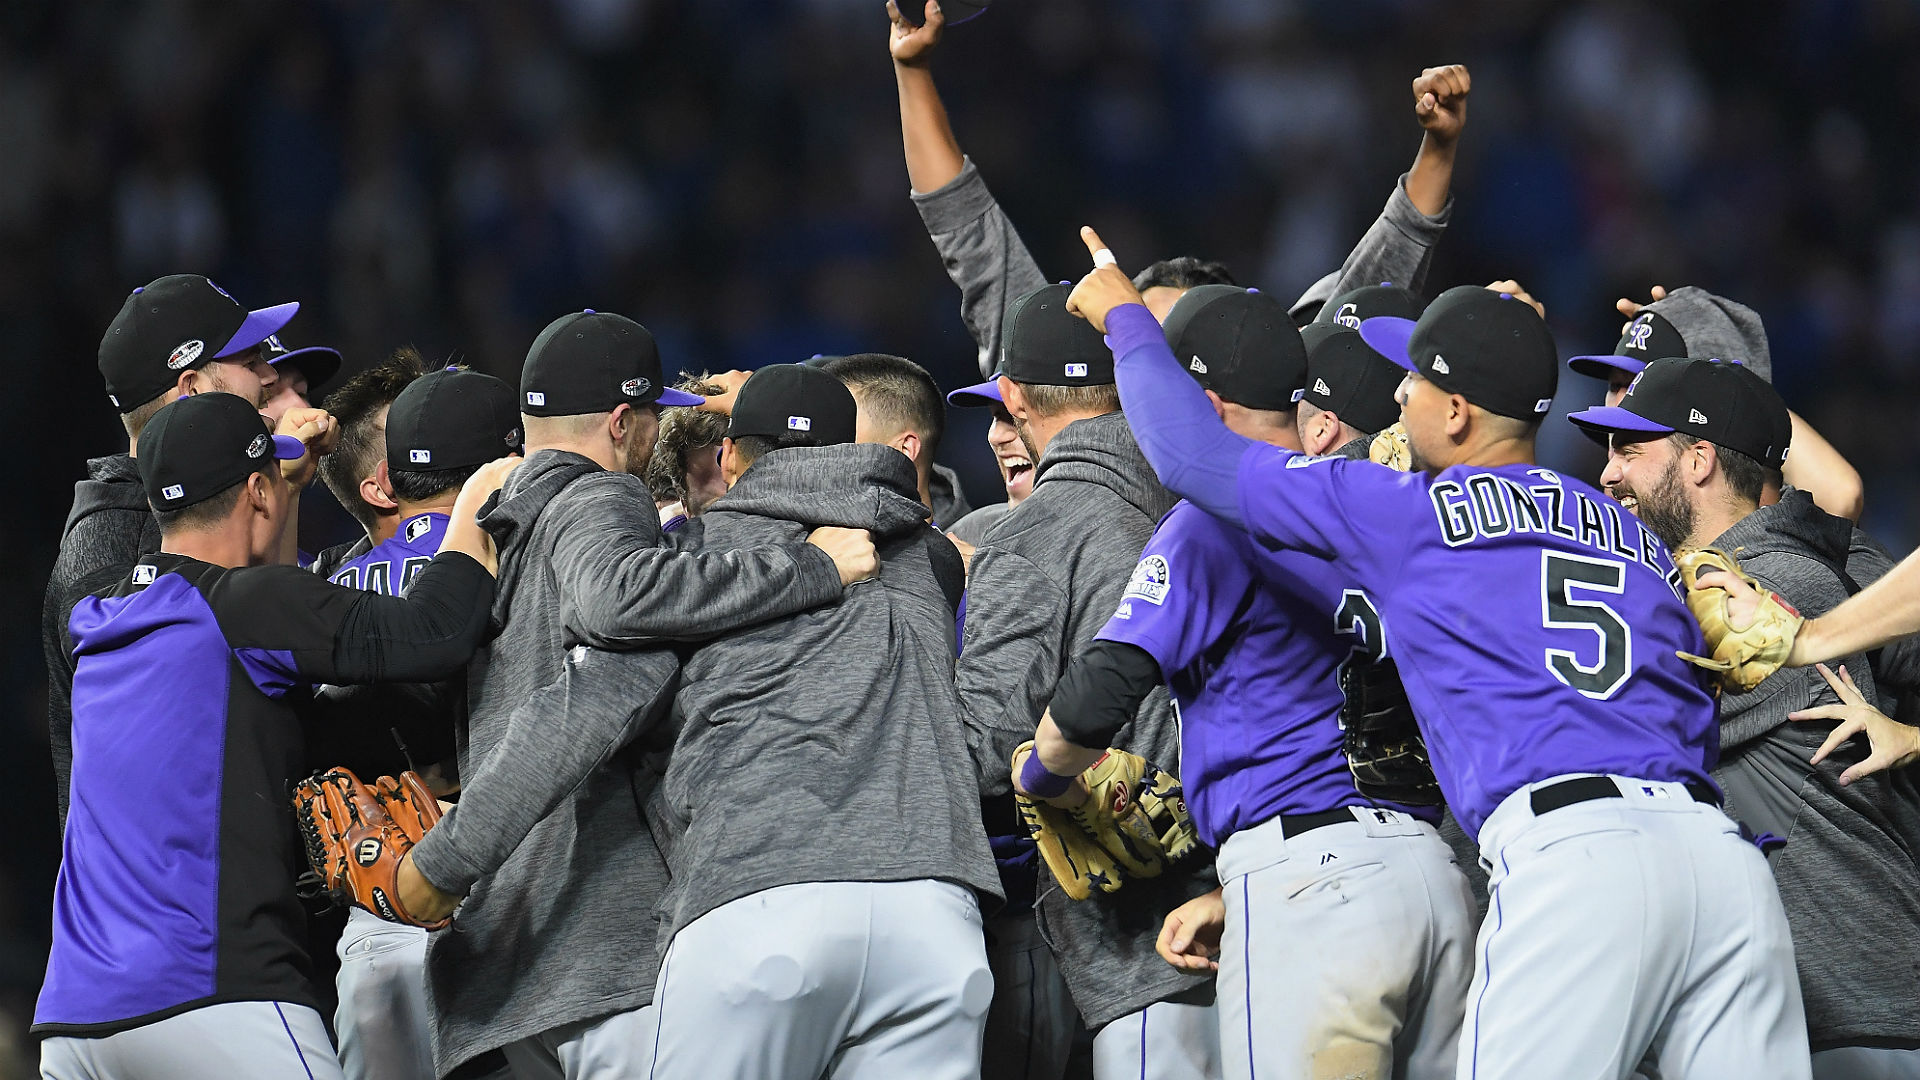 MLB Postseason 2018: Three takeaways from the Rockies' NL wild-card win over the Cubs